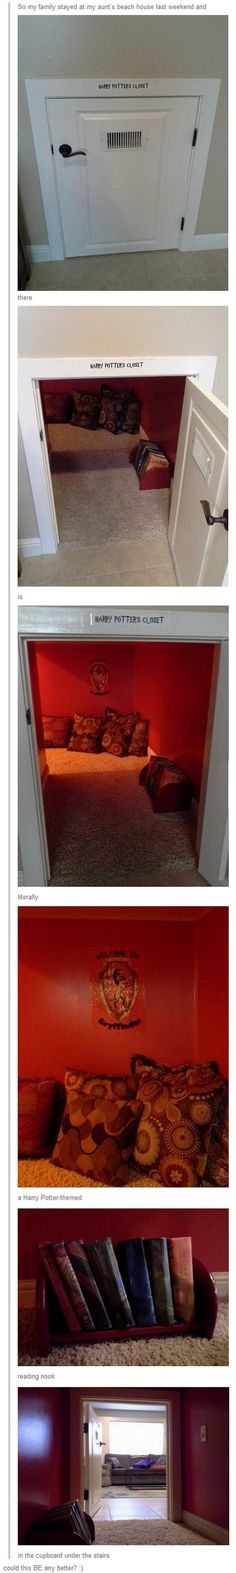 Harry Potter reading nook in the cupboard under the stairs! This is the best thing ever!